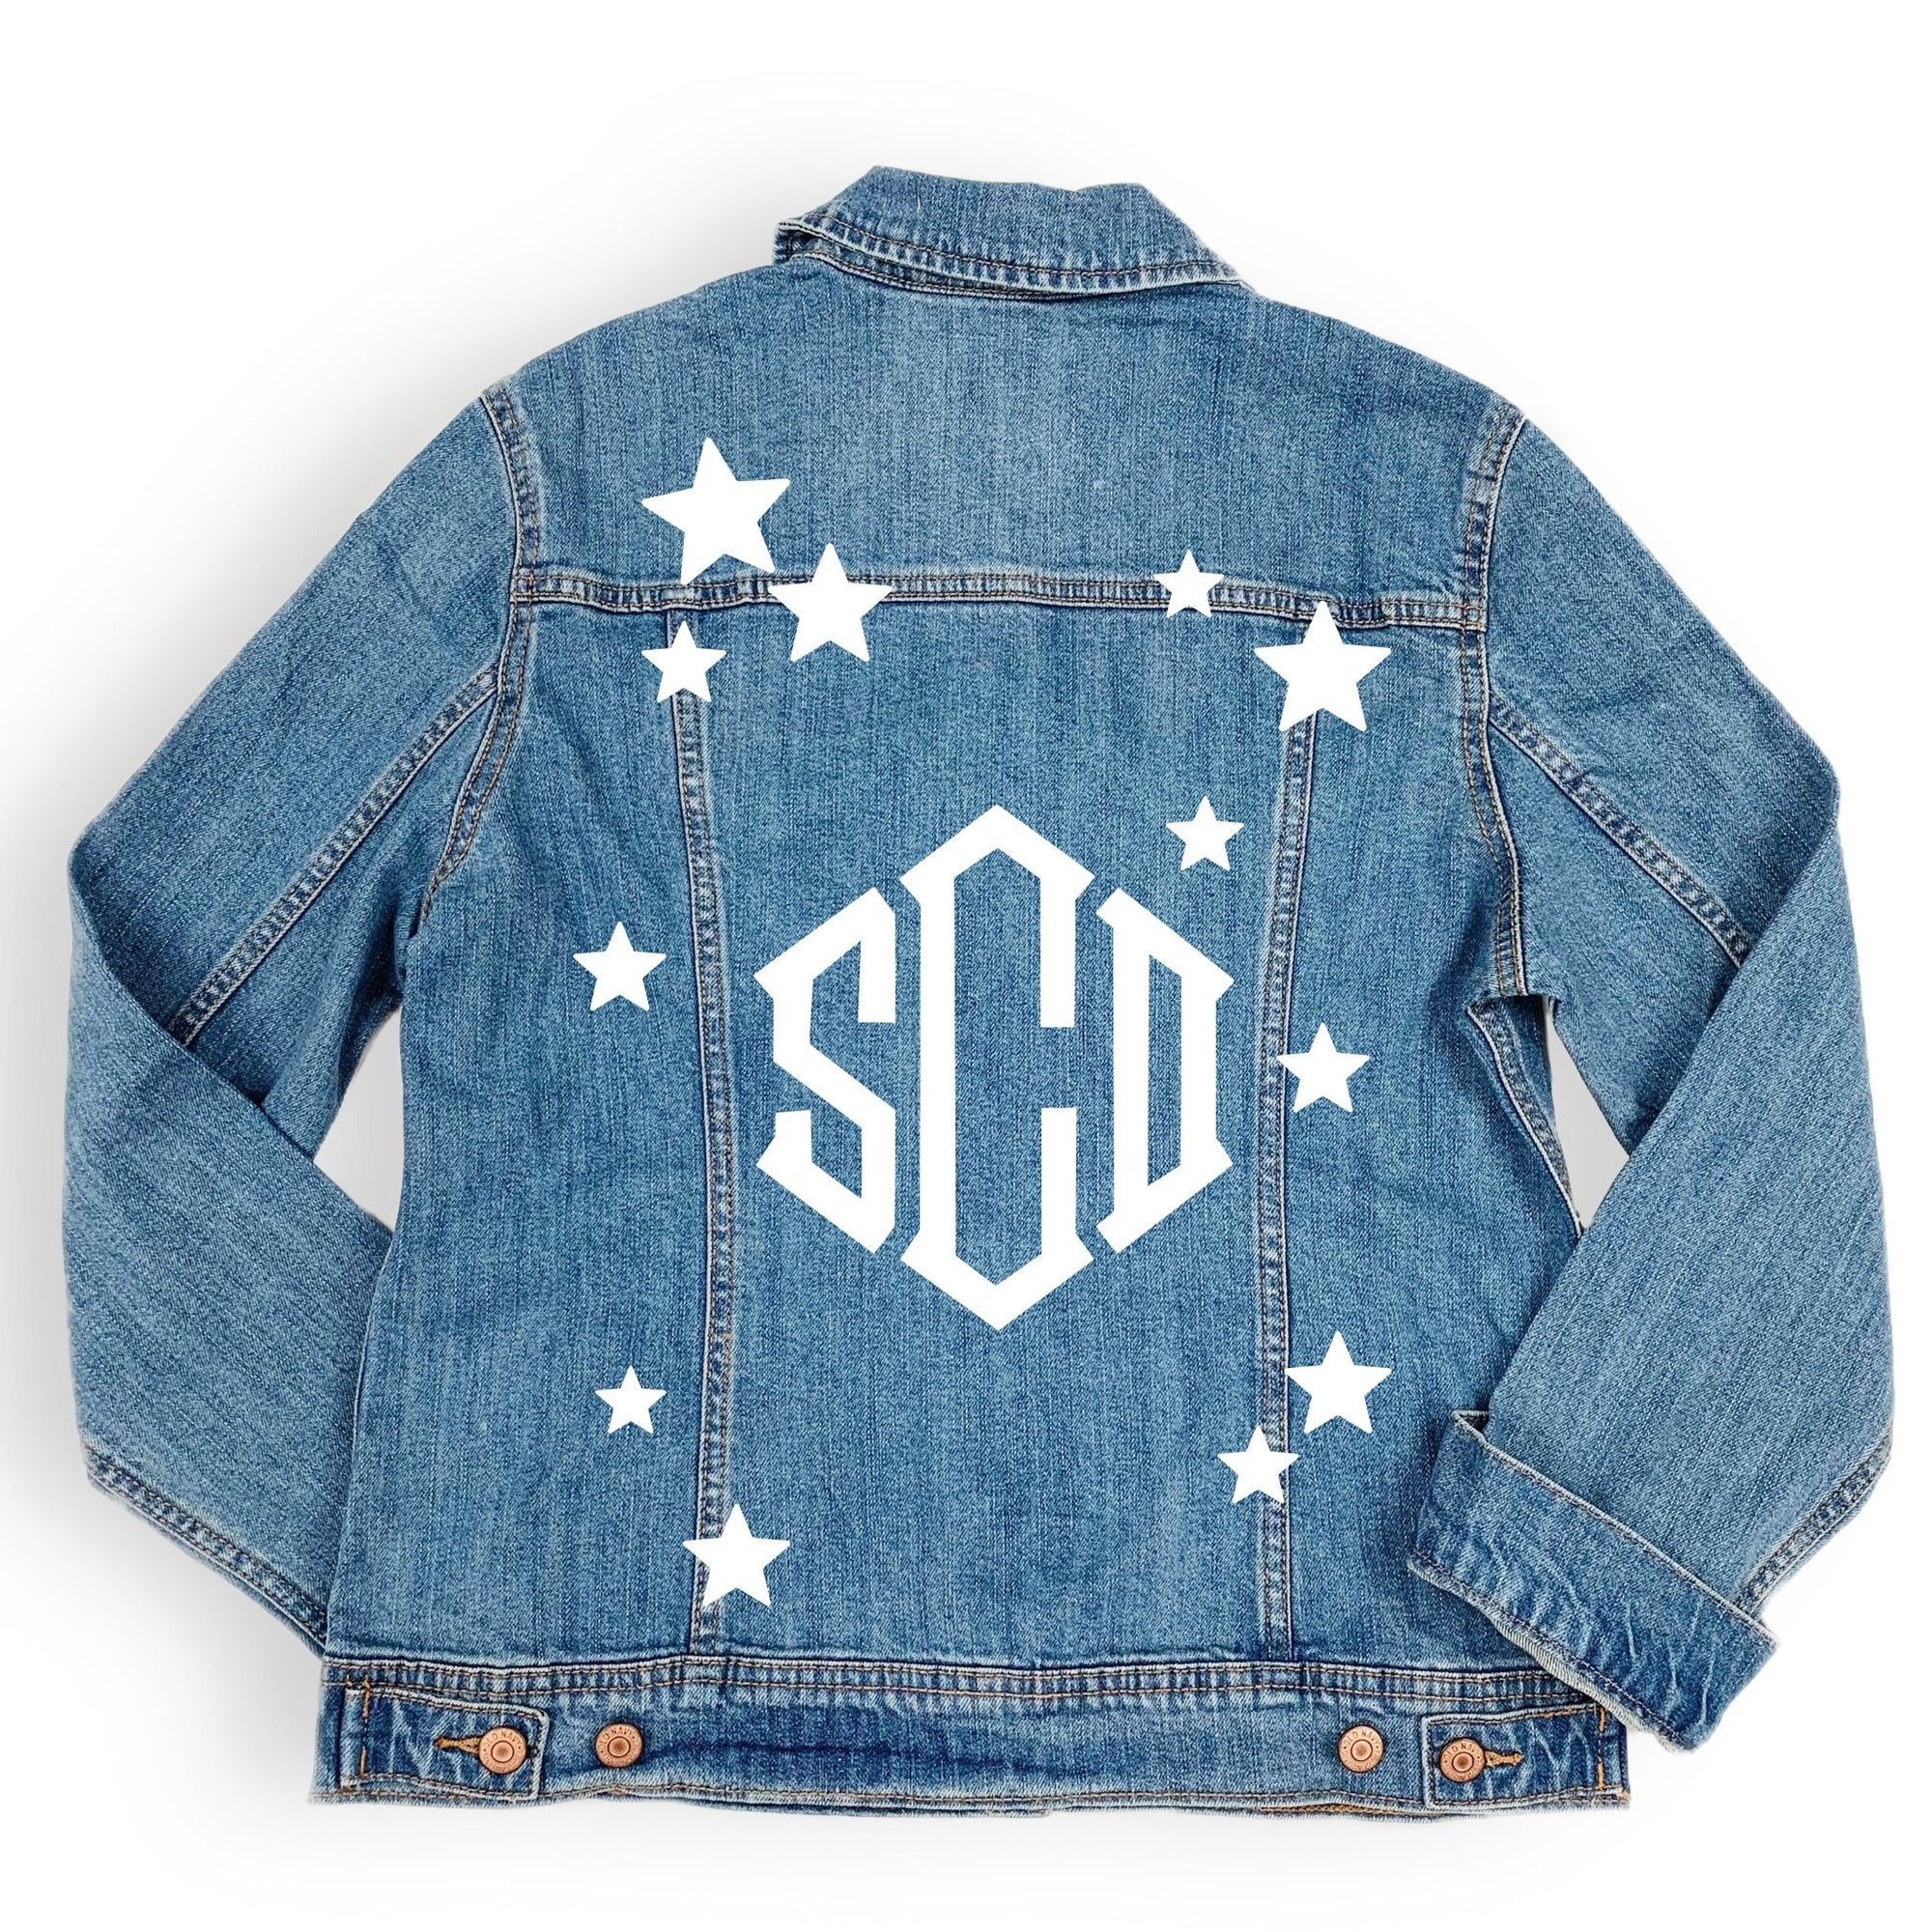 Monogram Star Denim Jacket